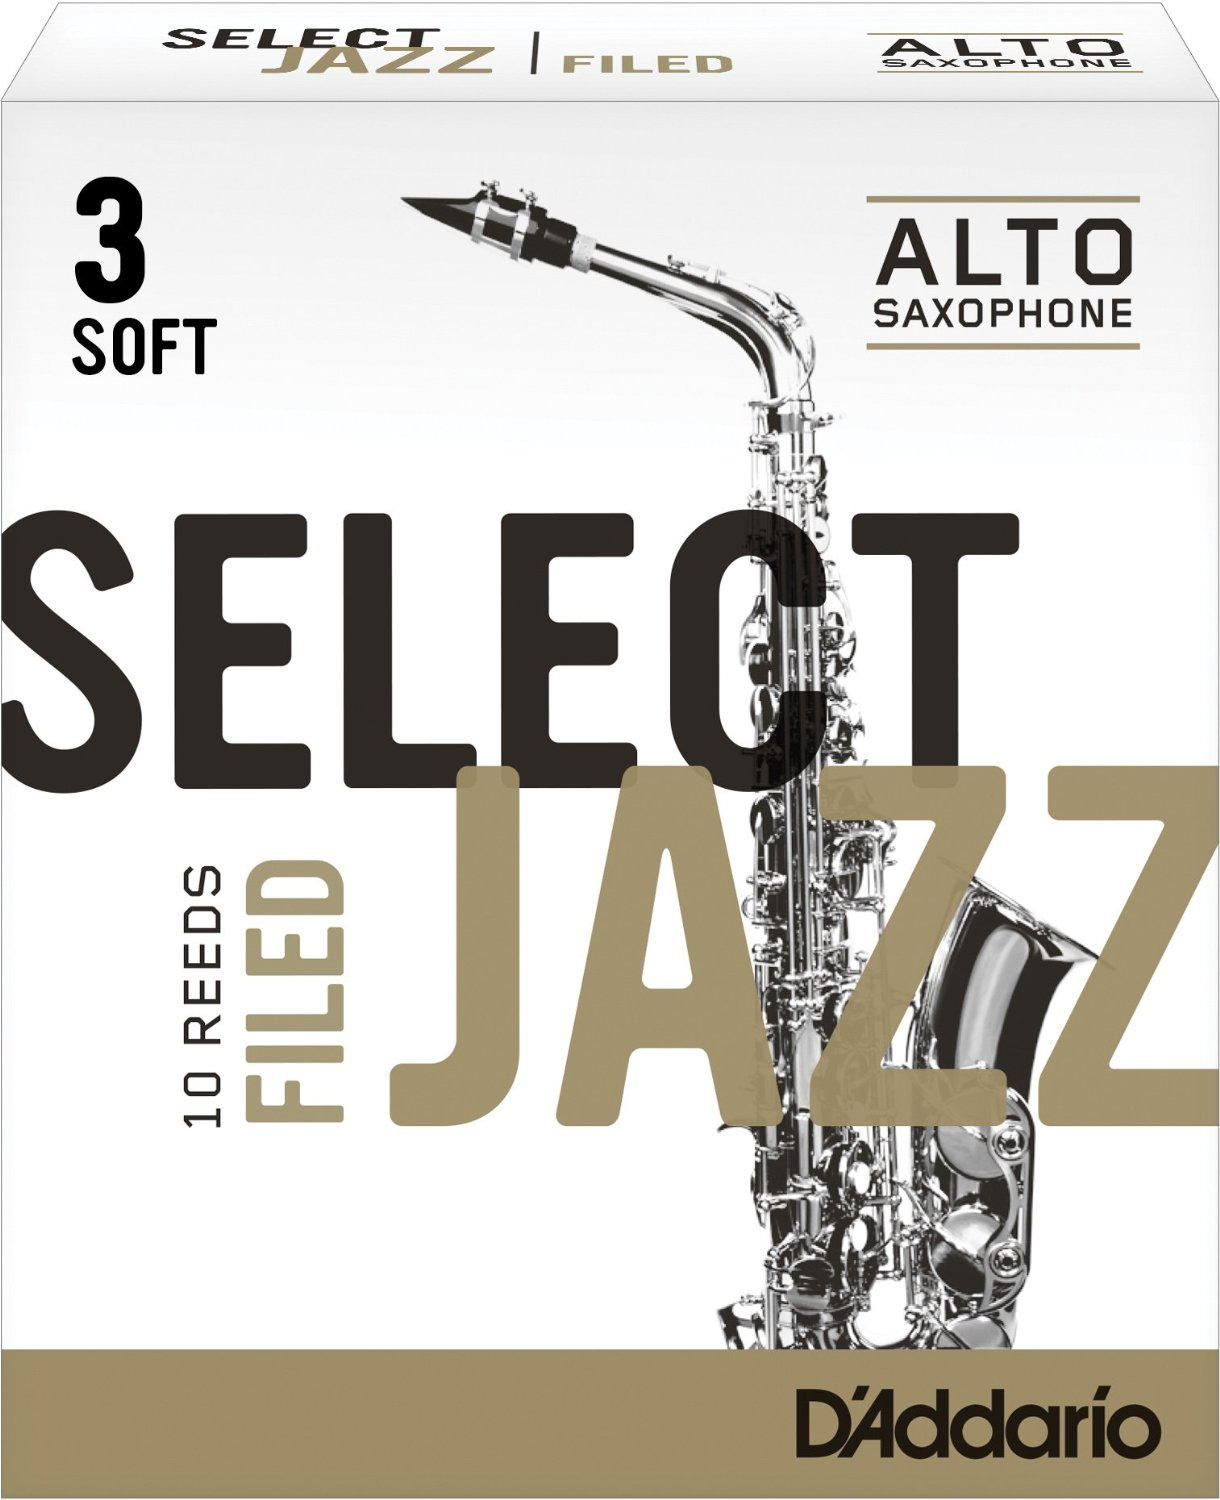 D�addario Select Jazz Filed Eb Alto Sax Reeds 10 ct 3 Strength by Rico